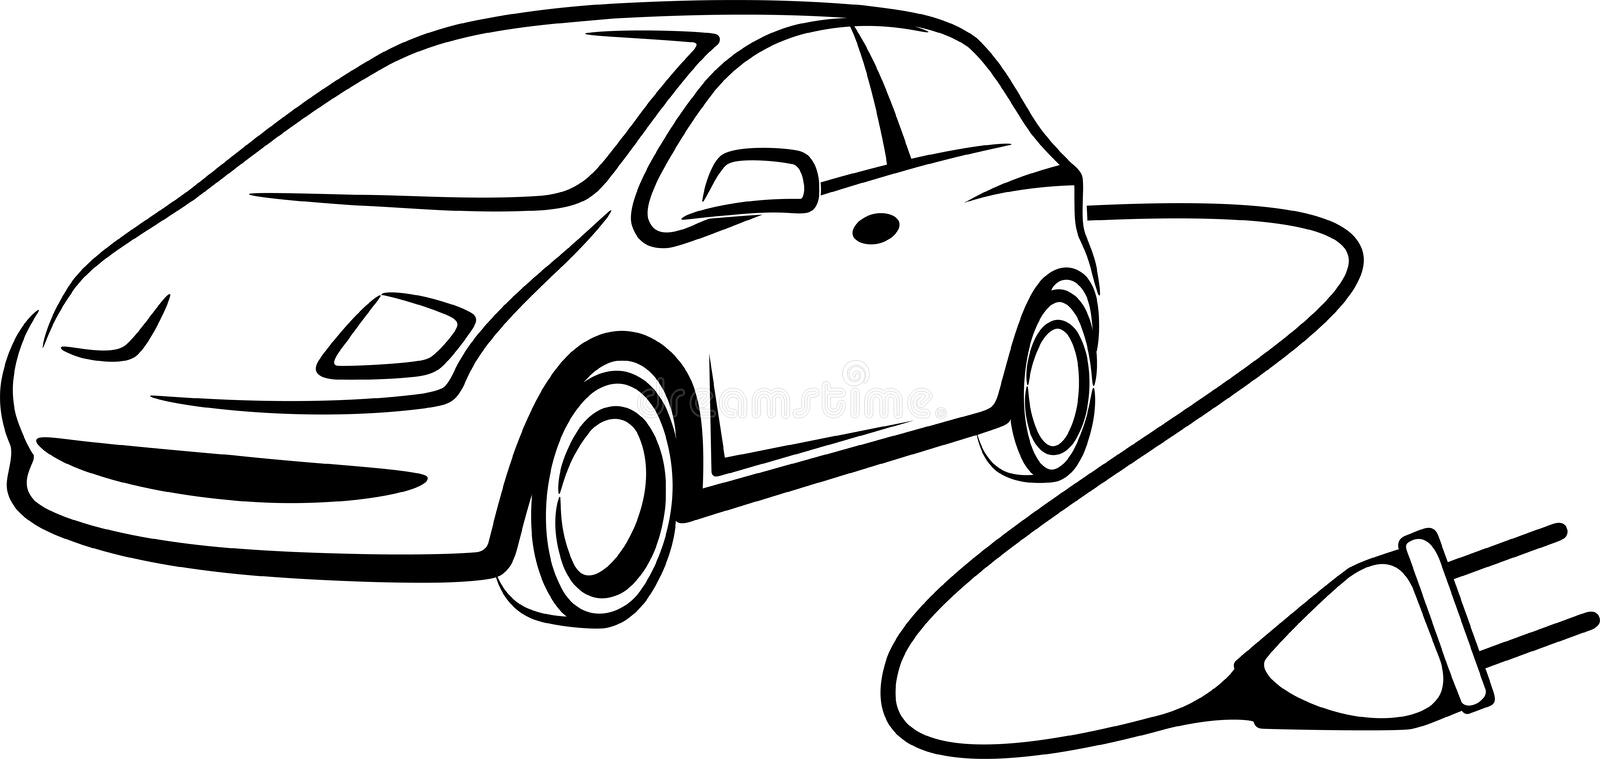 Electric car stock vector. Illustration of symbol